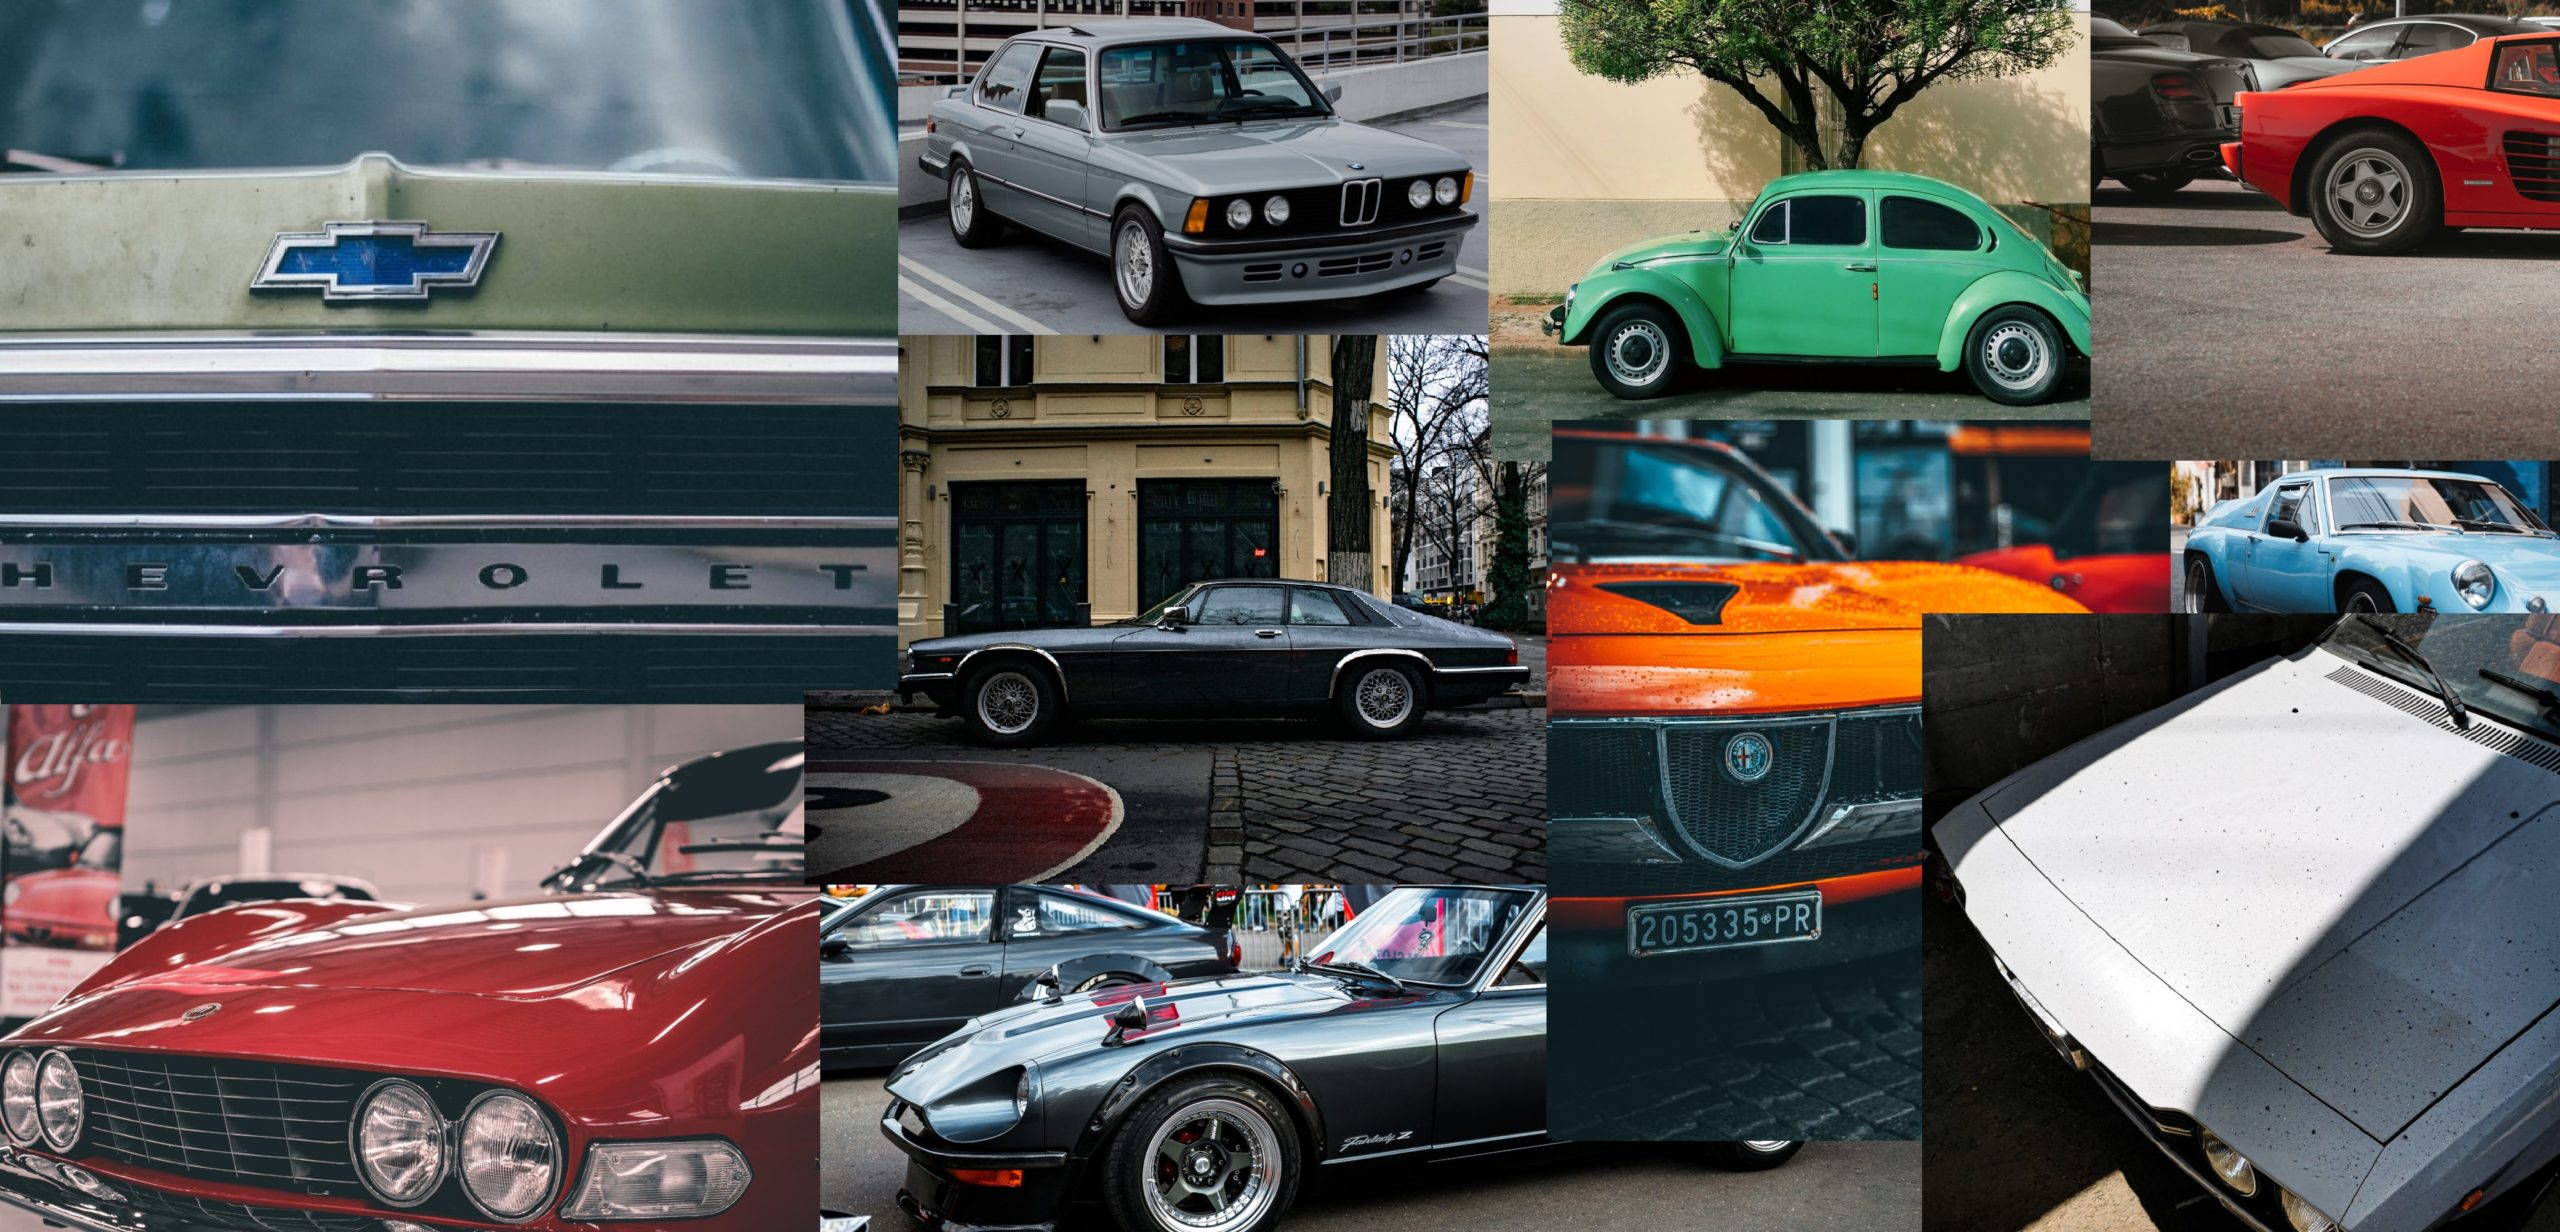 Oldtimer, Youngtimer, Classic Cars, Vintage Cars, Liebhaberfahrzeuge, New Classics